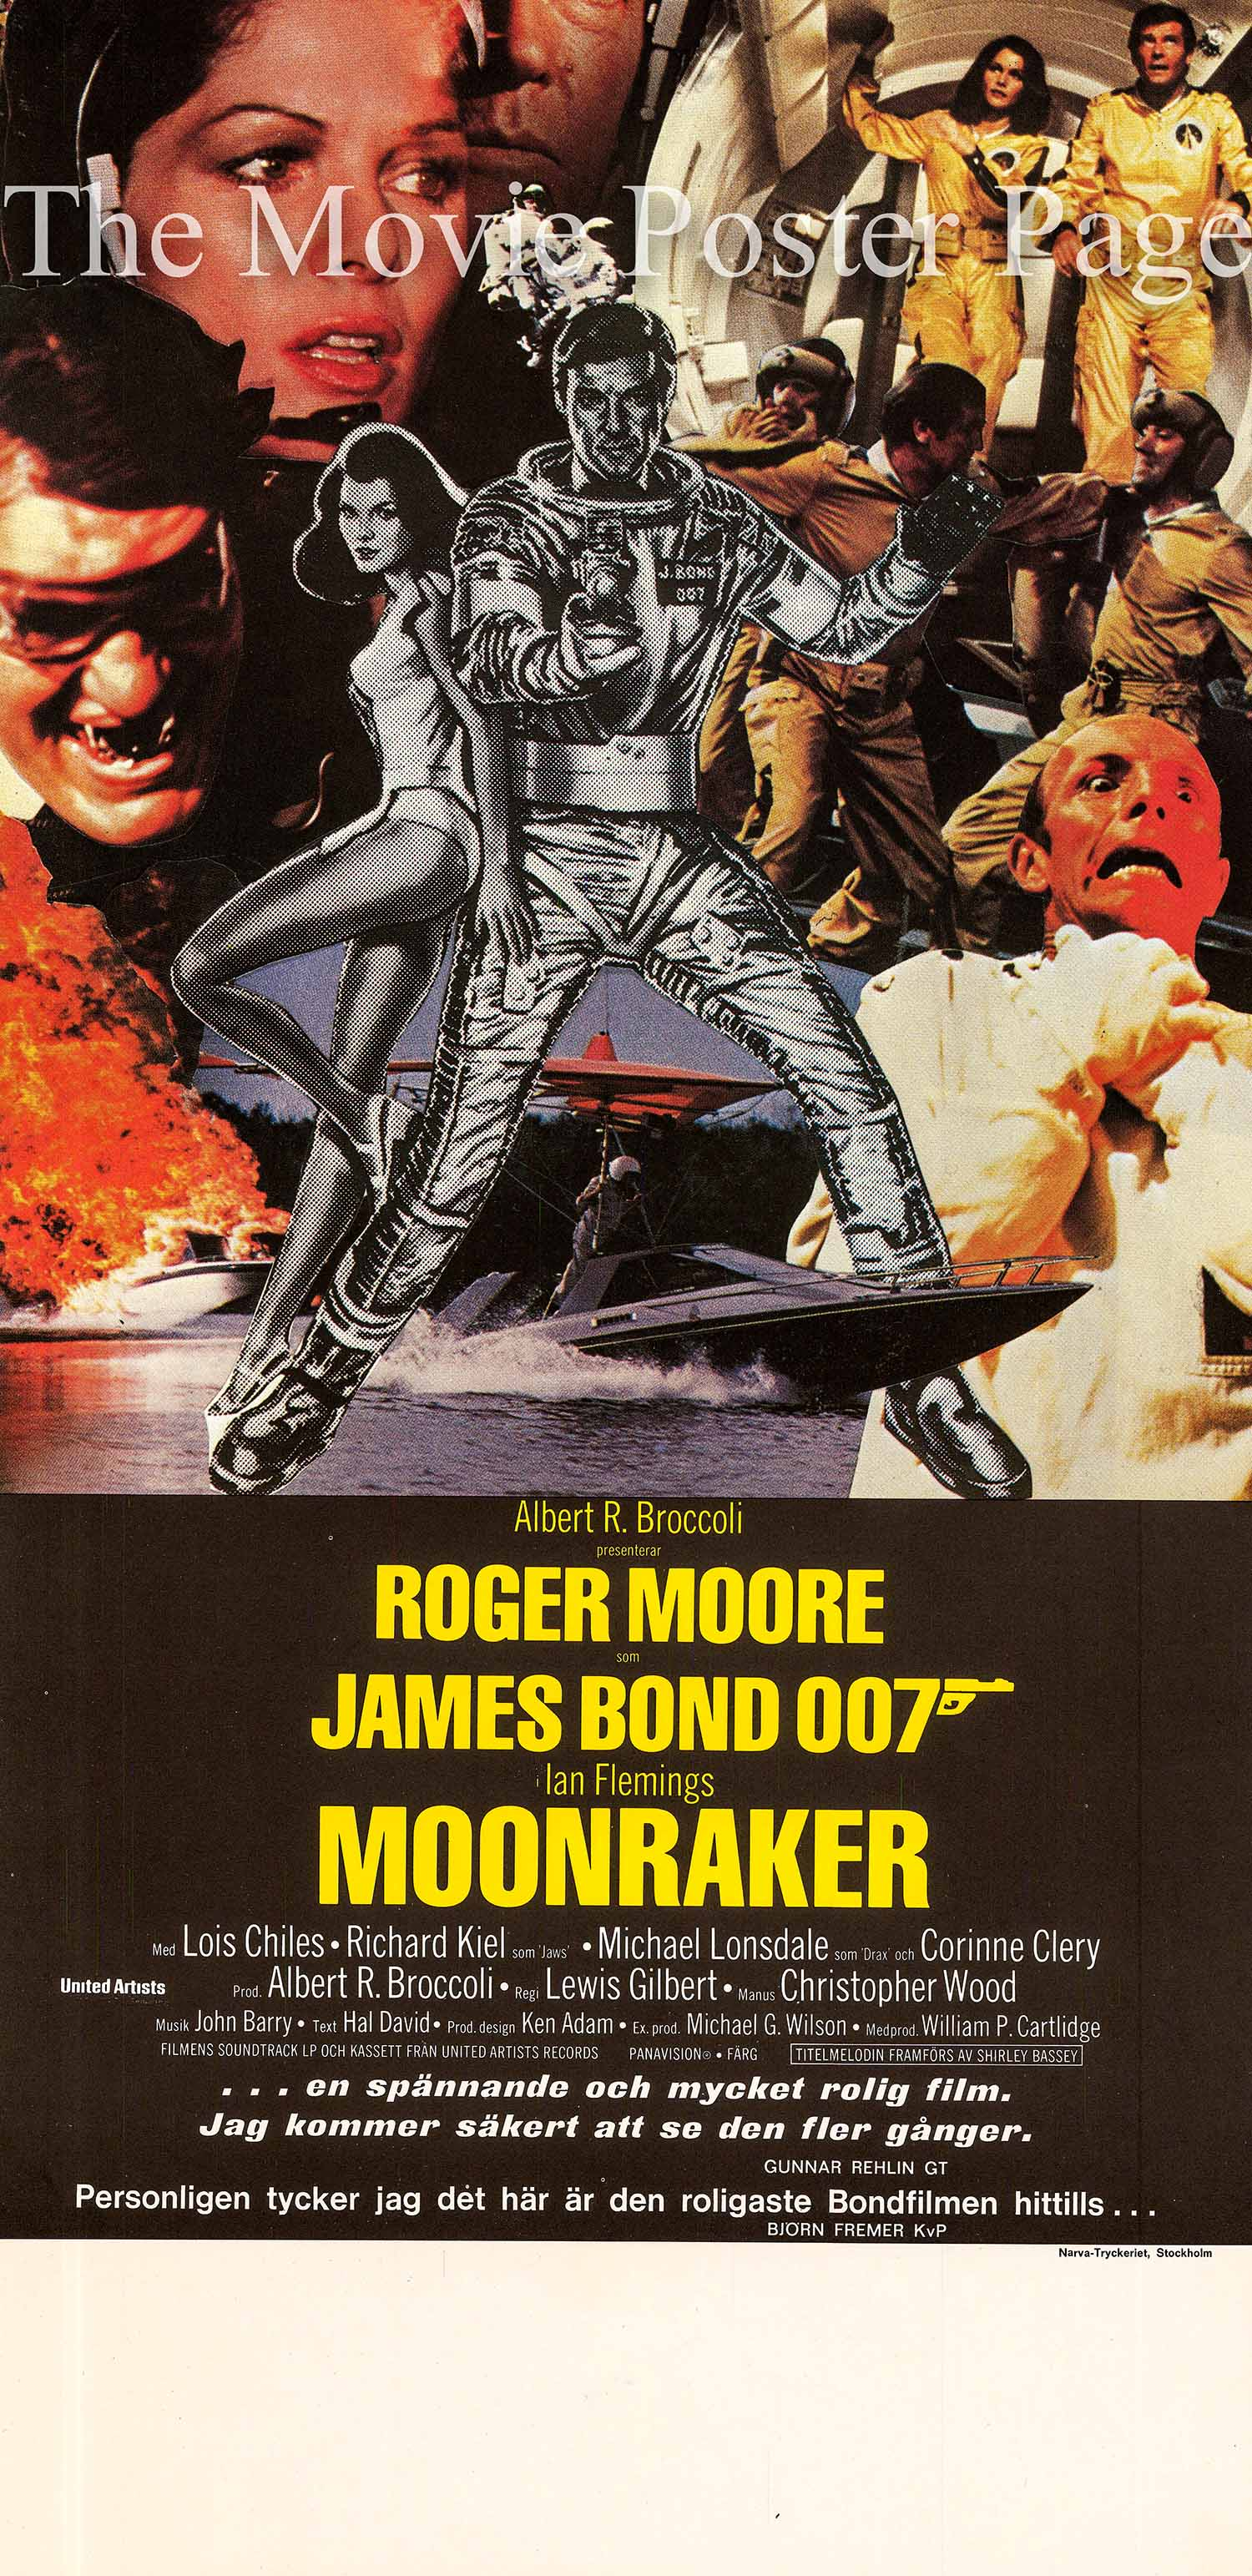 This is a Swedish insert poster using a design by Dan Gouzee made to promote the 1979 Lewis Gilbert film Moonraker starring Roger Moore as James Bond.